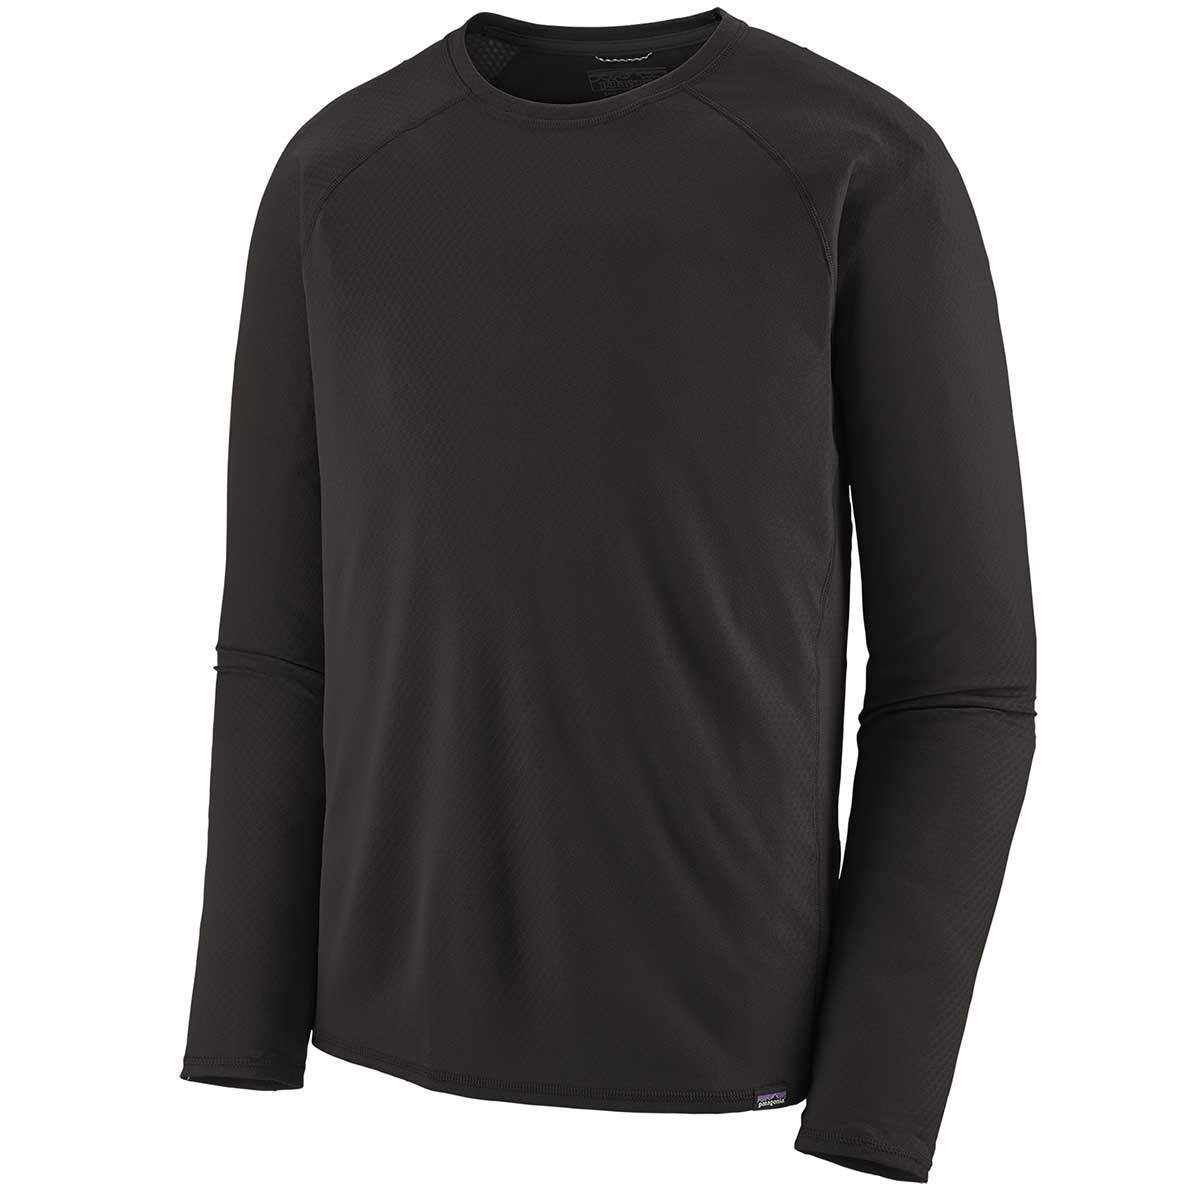 Patagonia men's Capilene Midweight Crew in Black front view